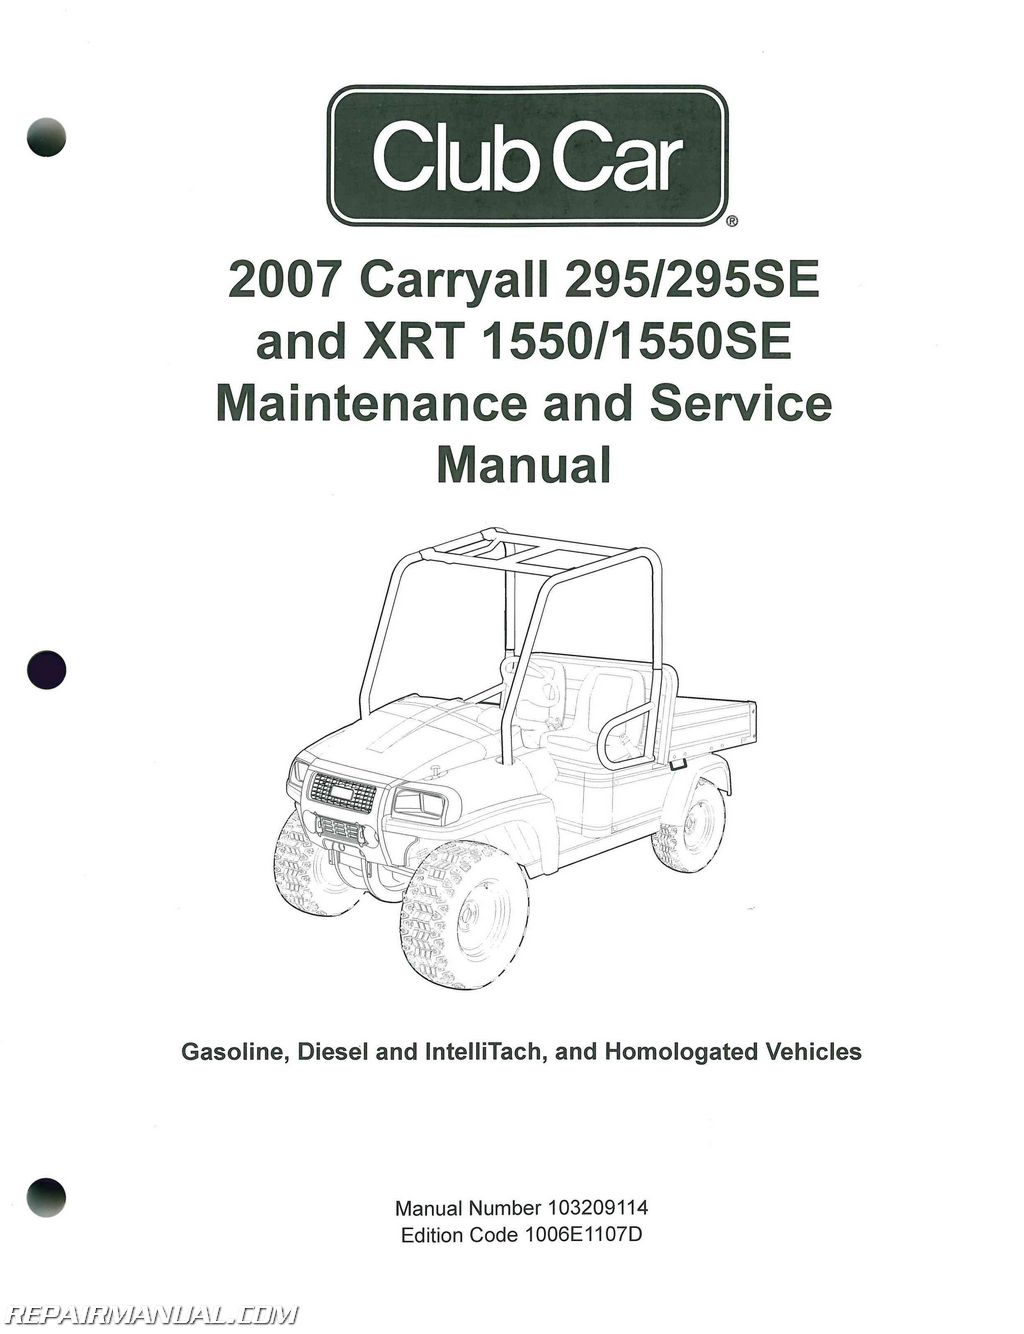 2007 club car carryall service manual 295  295se  u2013 xrt 1550  1550se gas  diesel  u2013 intellitach